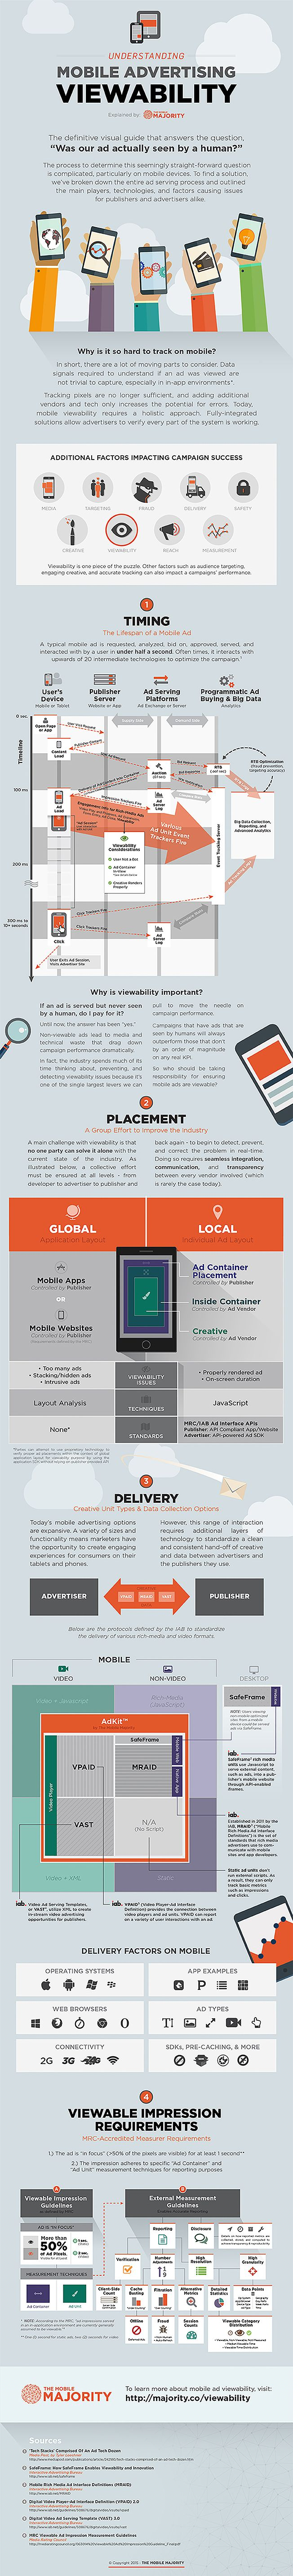 How mobile ads are becoming more engaging and accountable. Infographic via @adweek #mobile #advertising #consumer